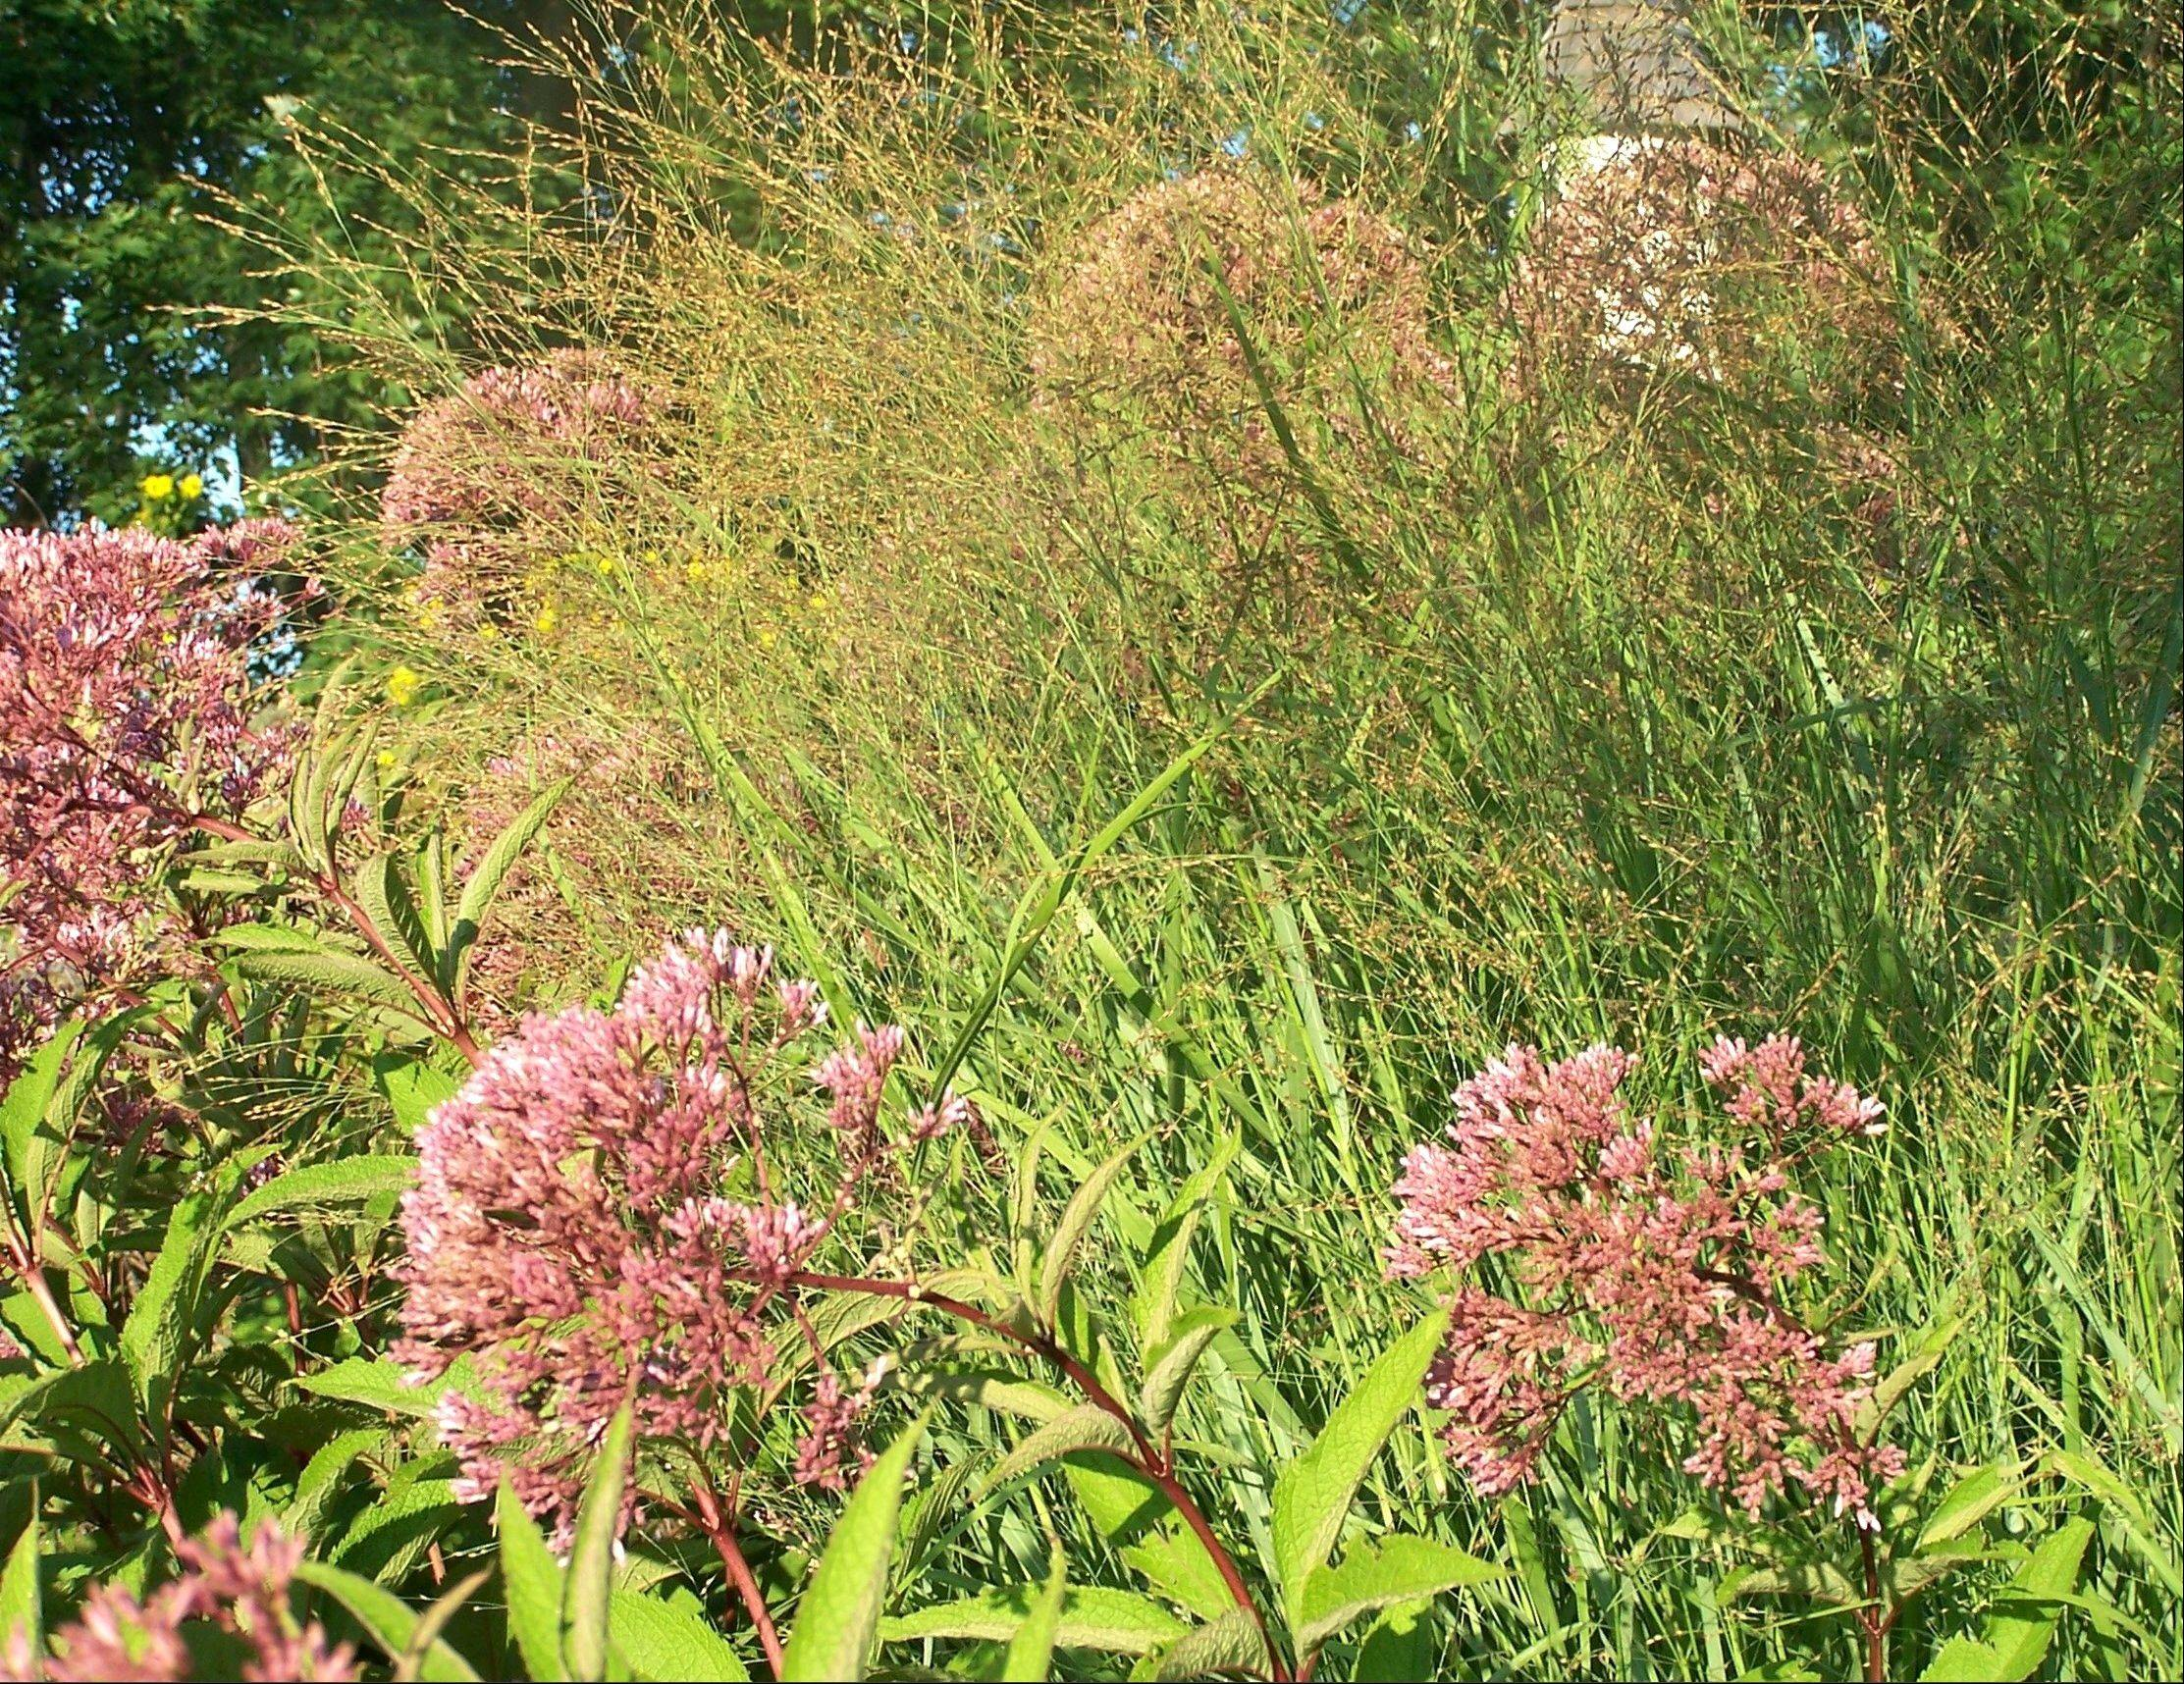 The seed heads of Panicum mingle beautifully with the flower of Joe Pye weed